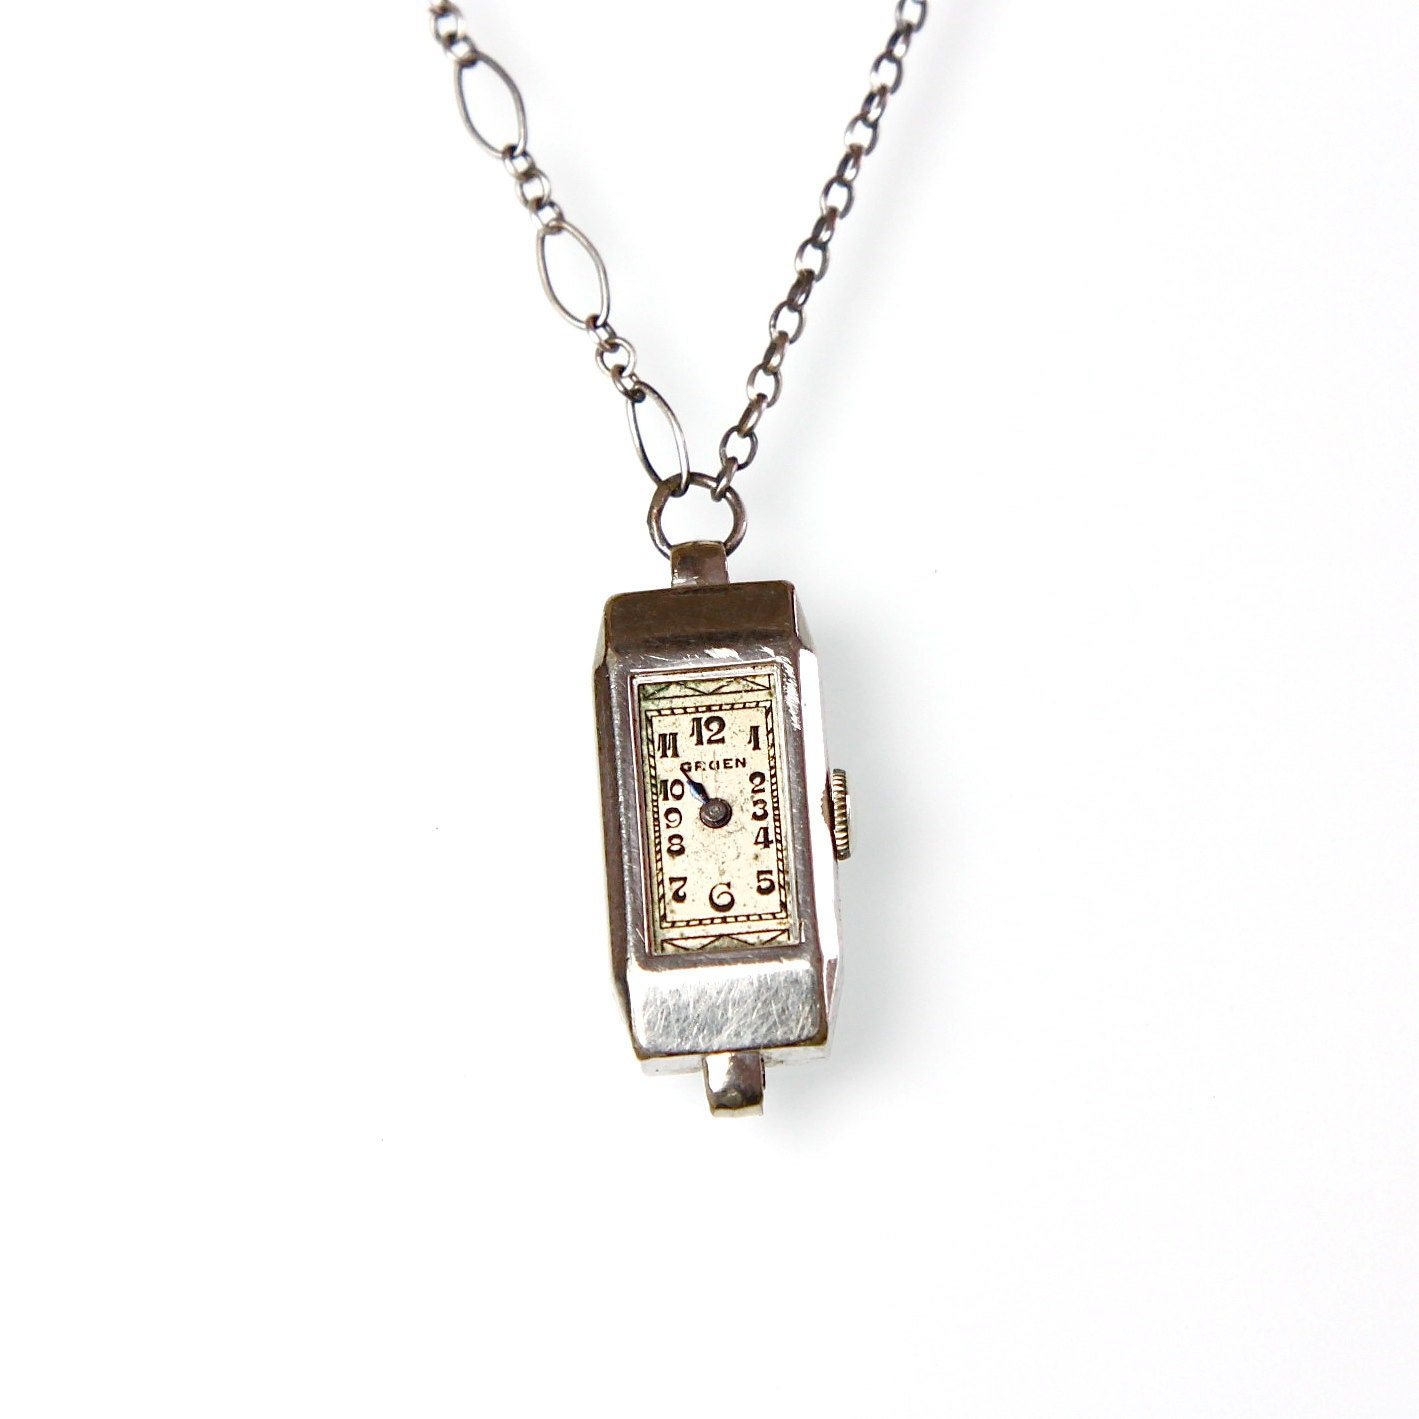 Watch Necklace Sterling Silver Art Deco Vintage - salvagelife